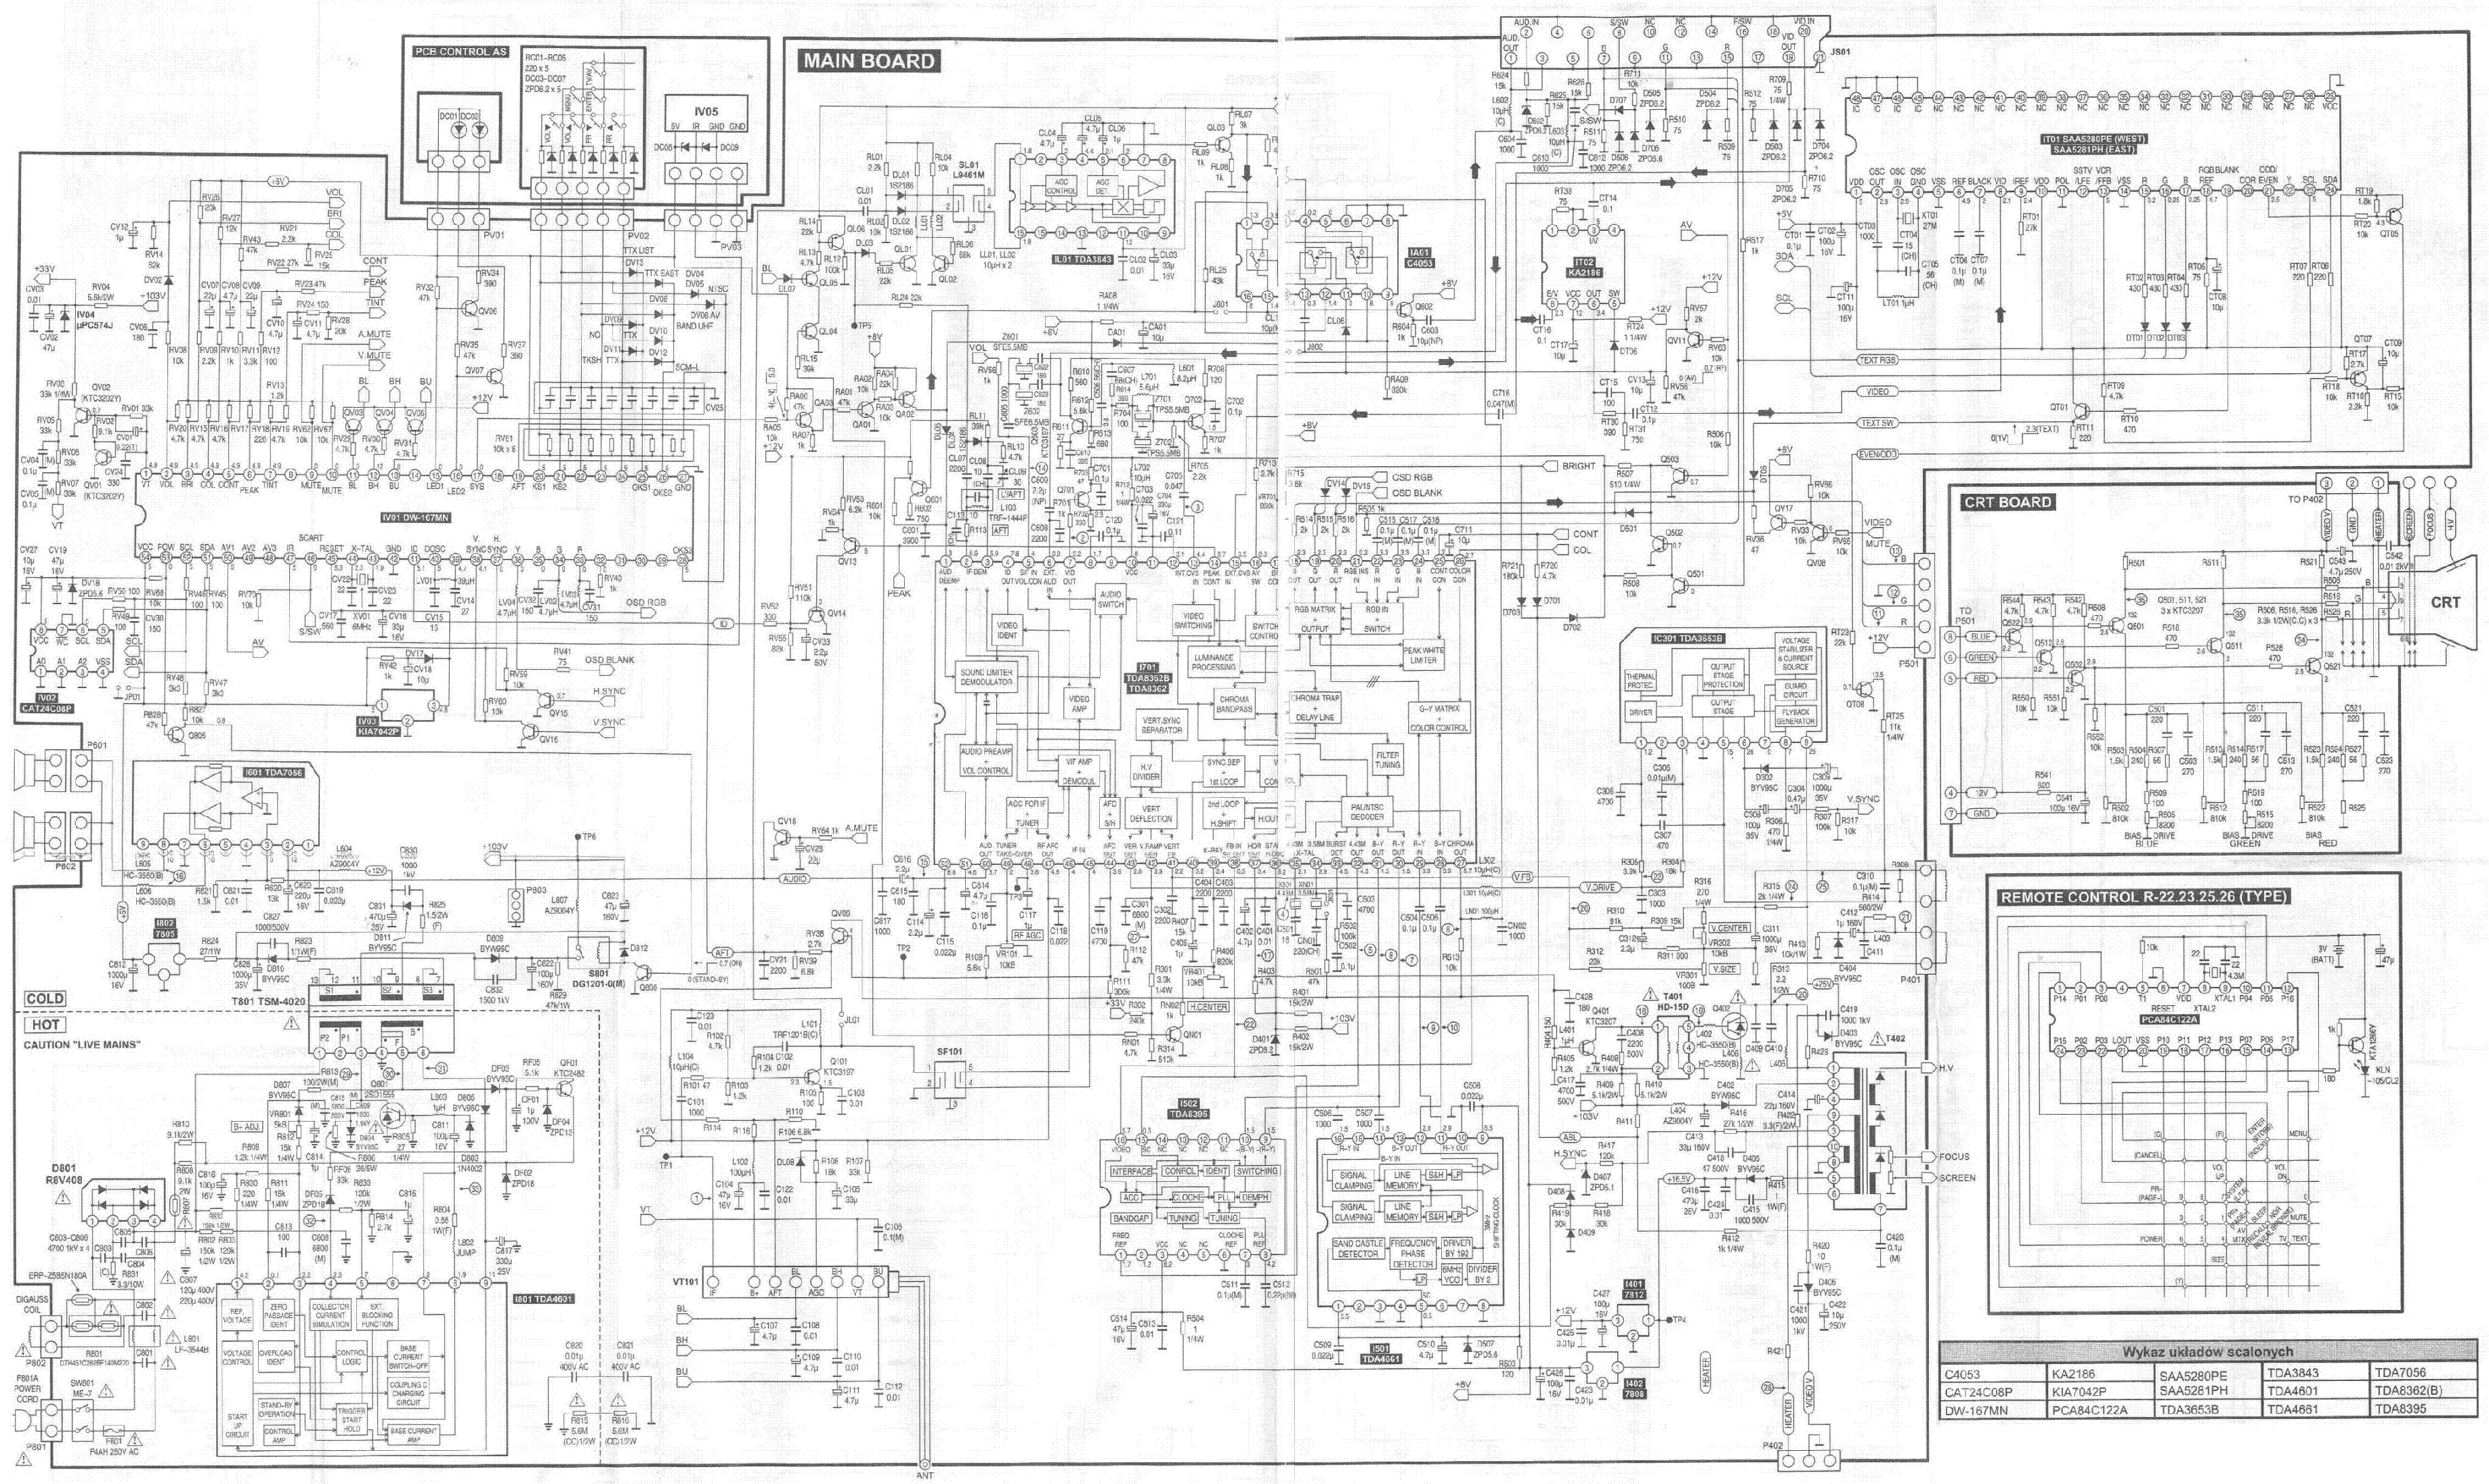 DAEWOO CP33 service manual (1st page)